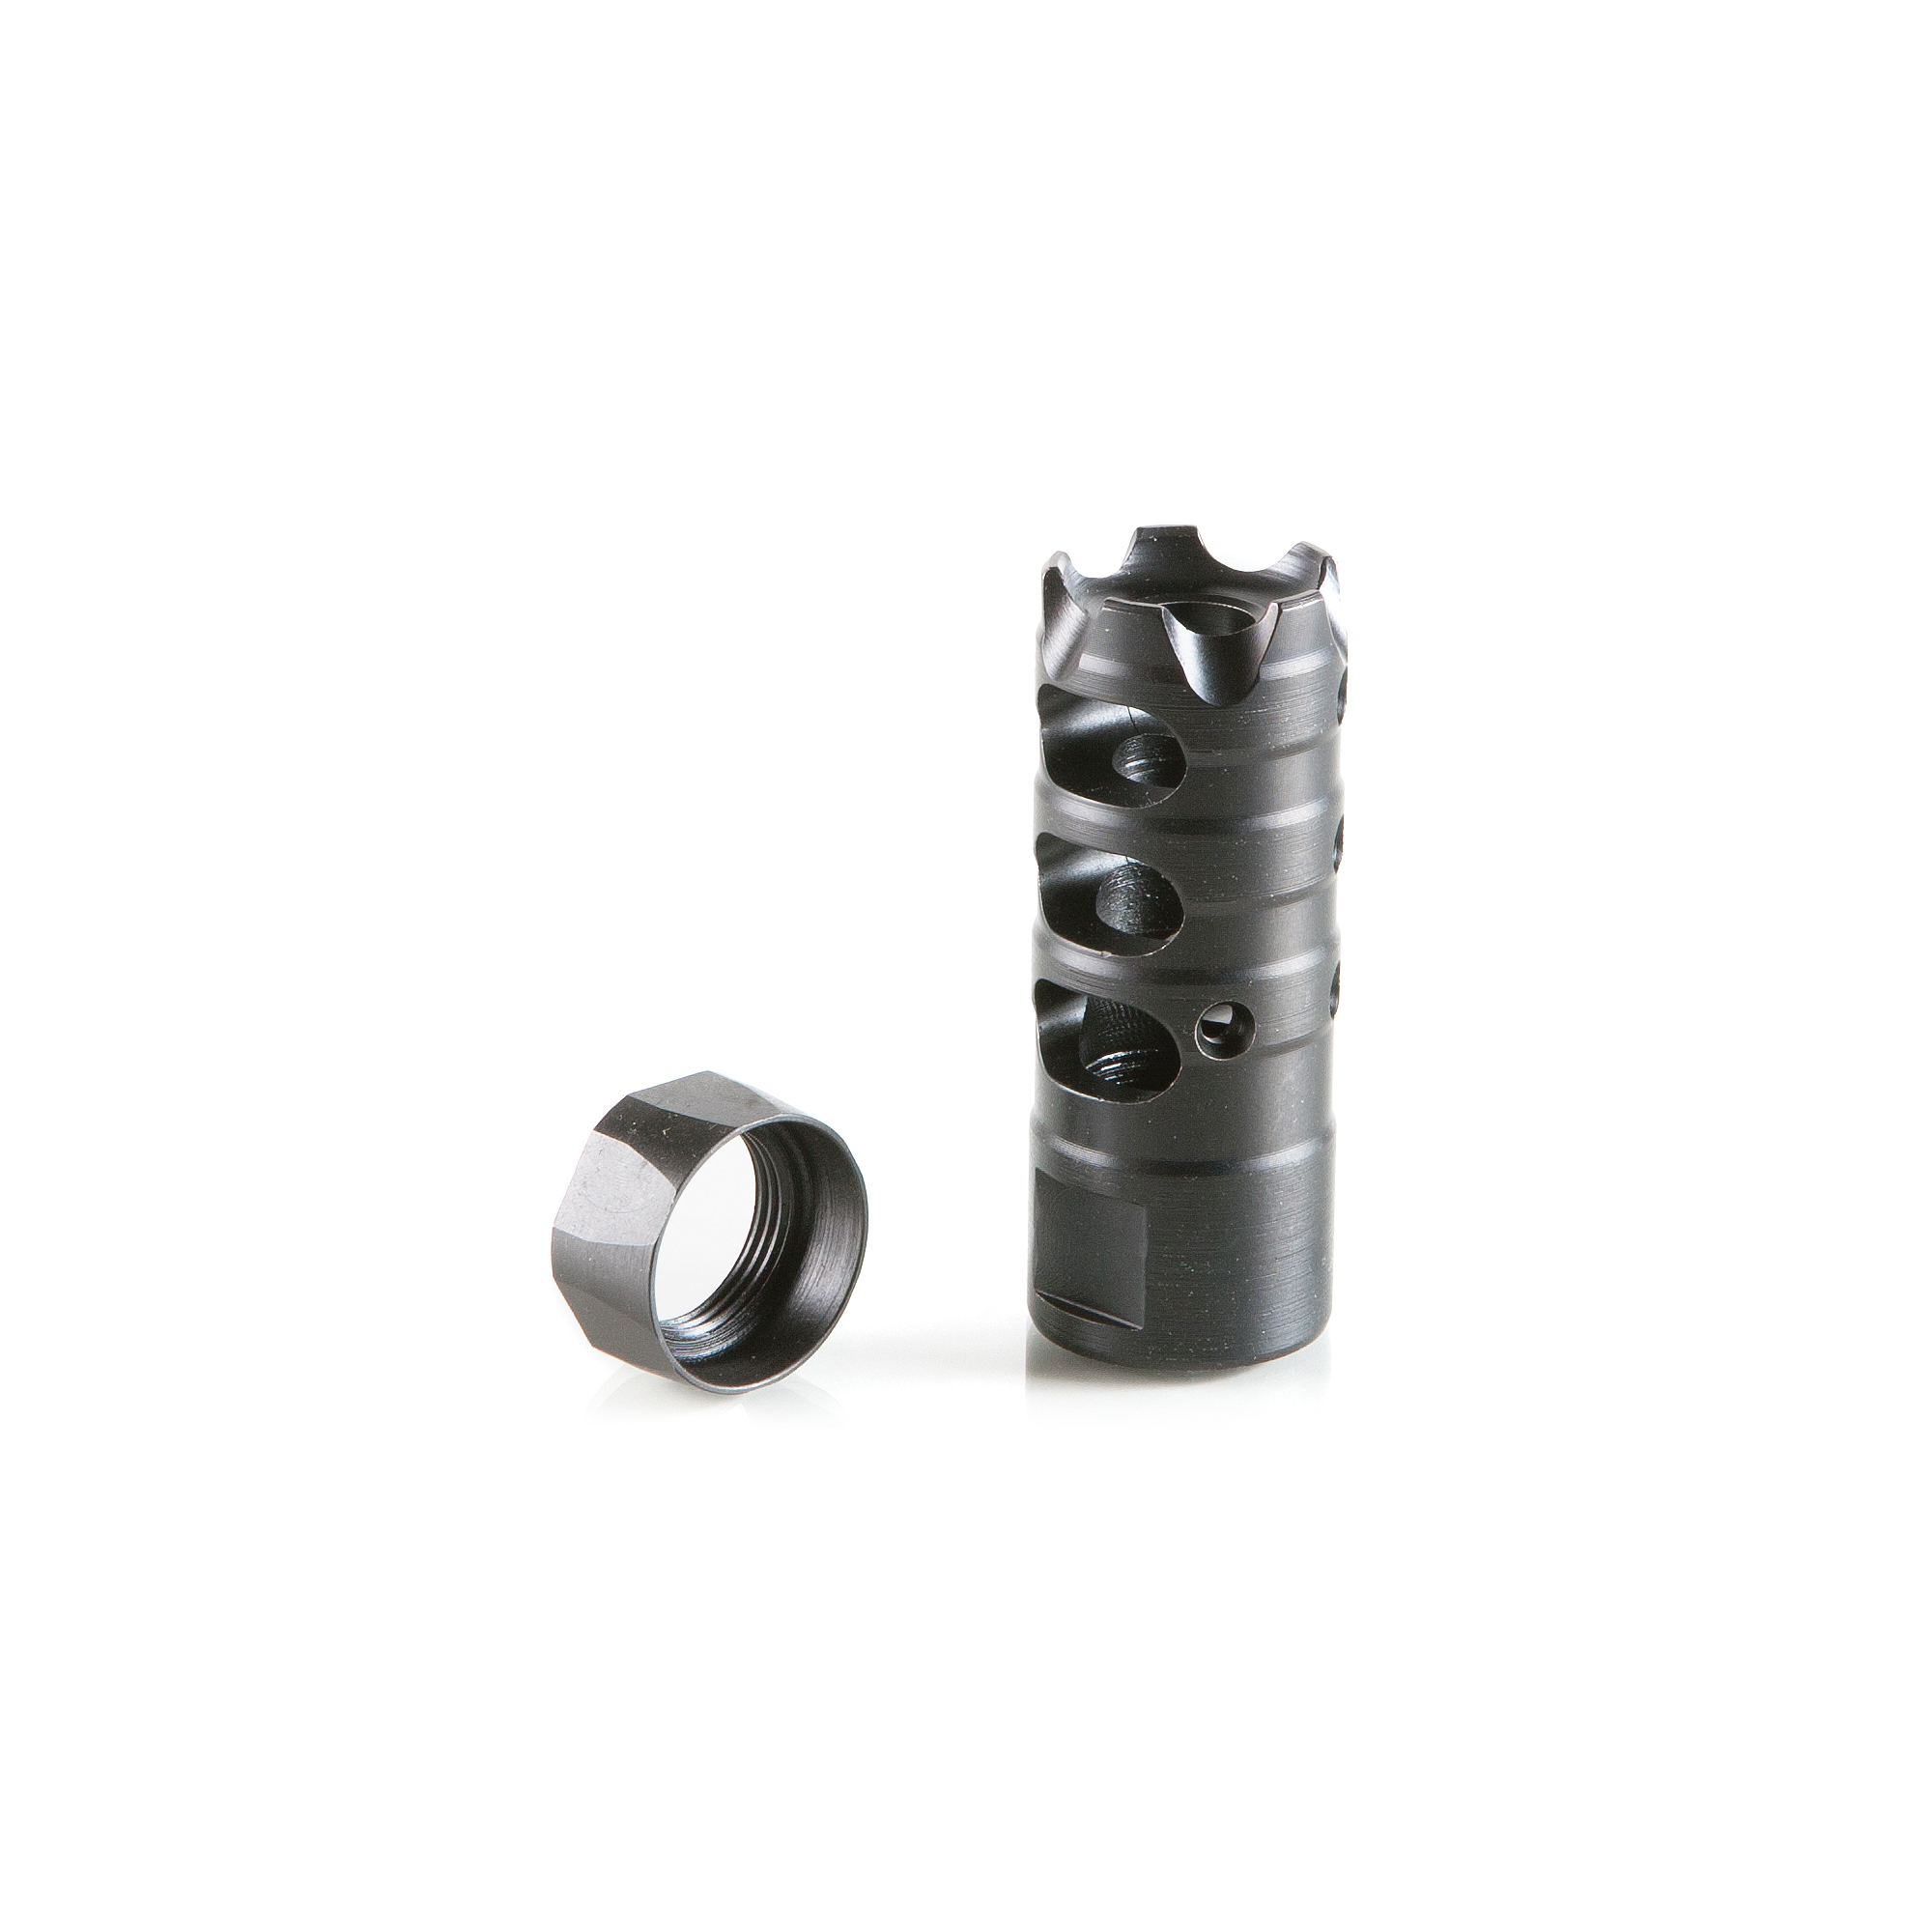 Designed by POF this nitride heat treated muzzle brake controls muzzle impulse for ultimate accuracy and an unbelievably soft recoil. Comes complete with a nitride heat treated collar and five (5) strike prongs.